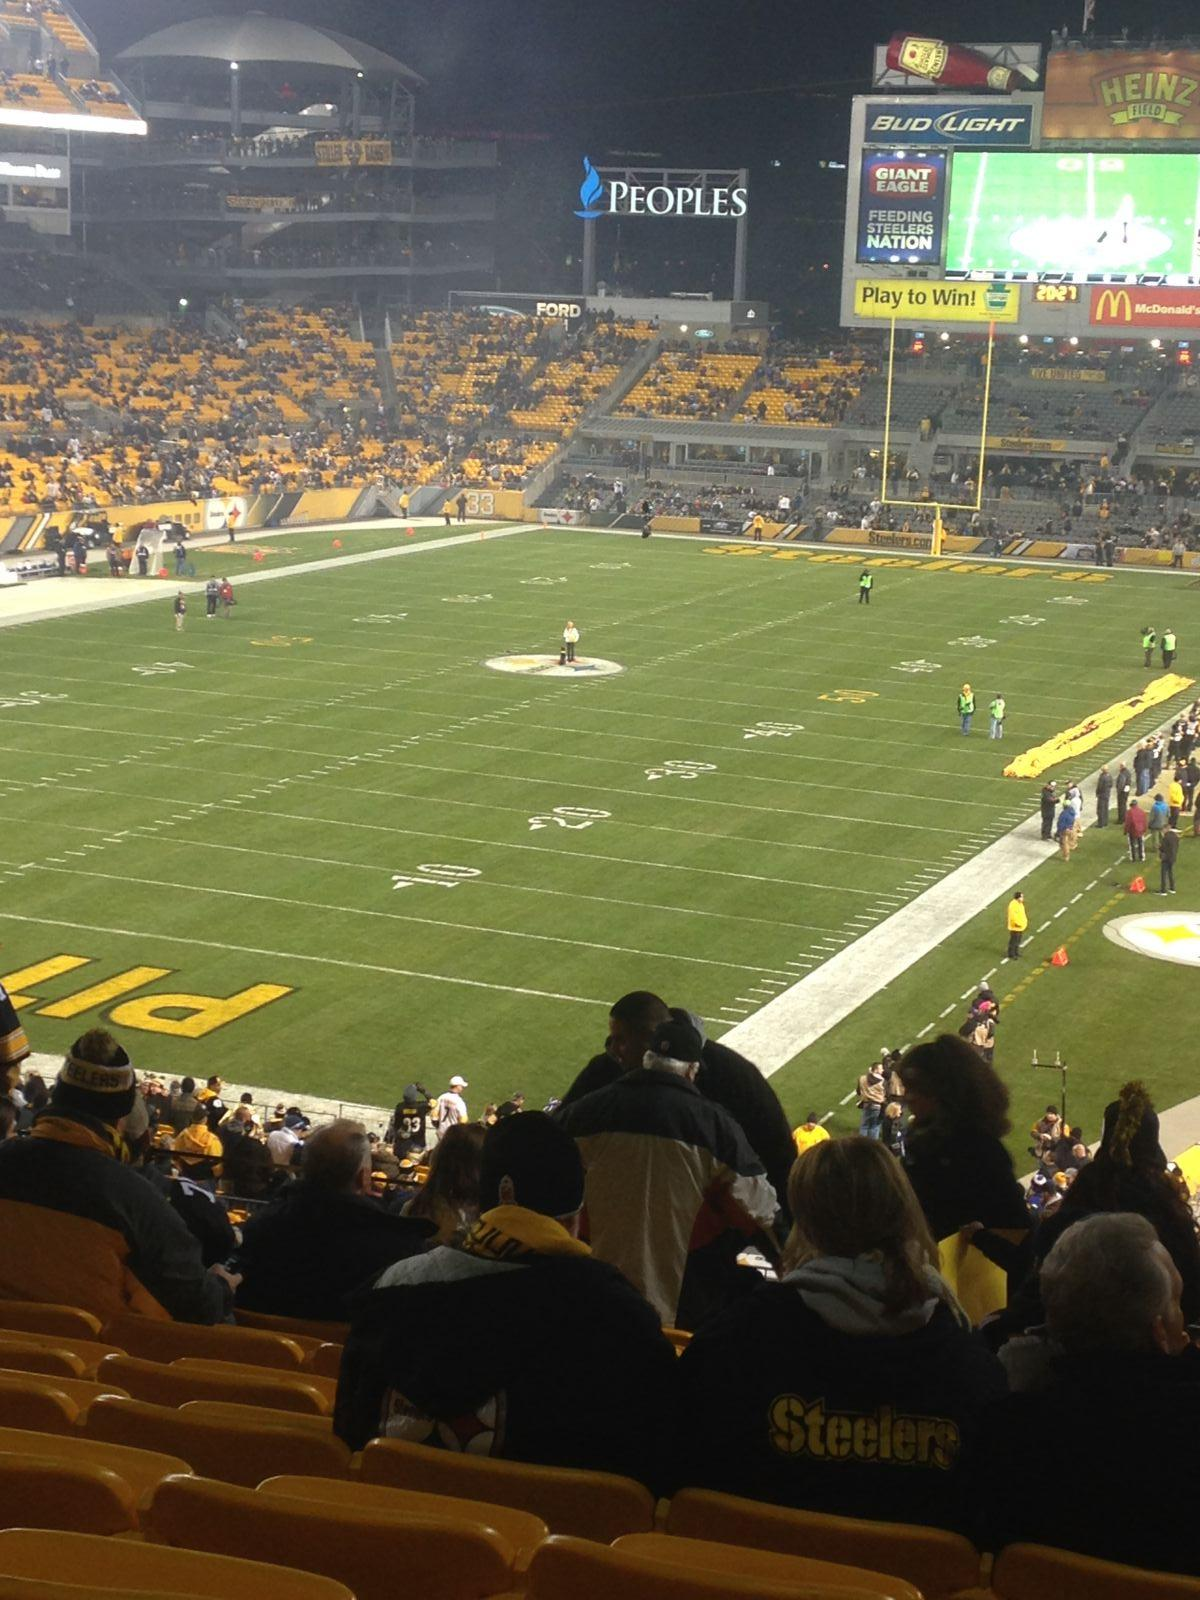 Seat View for Heinz Field Section 226, Row O, Seat 19